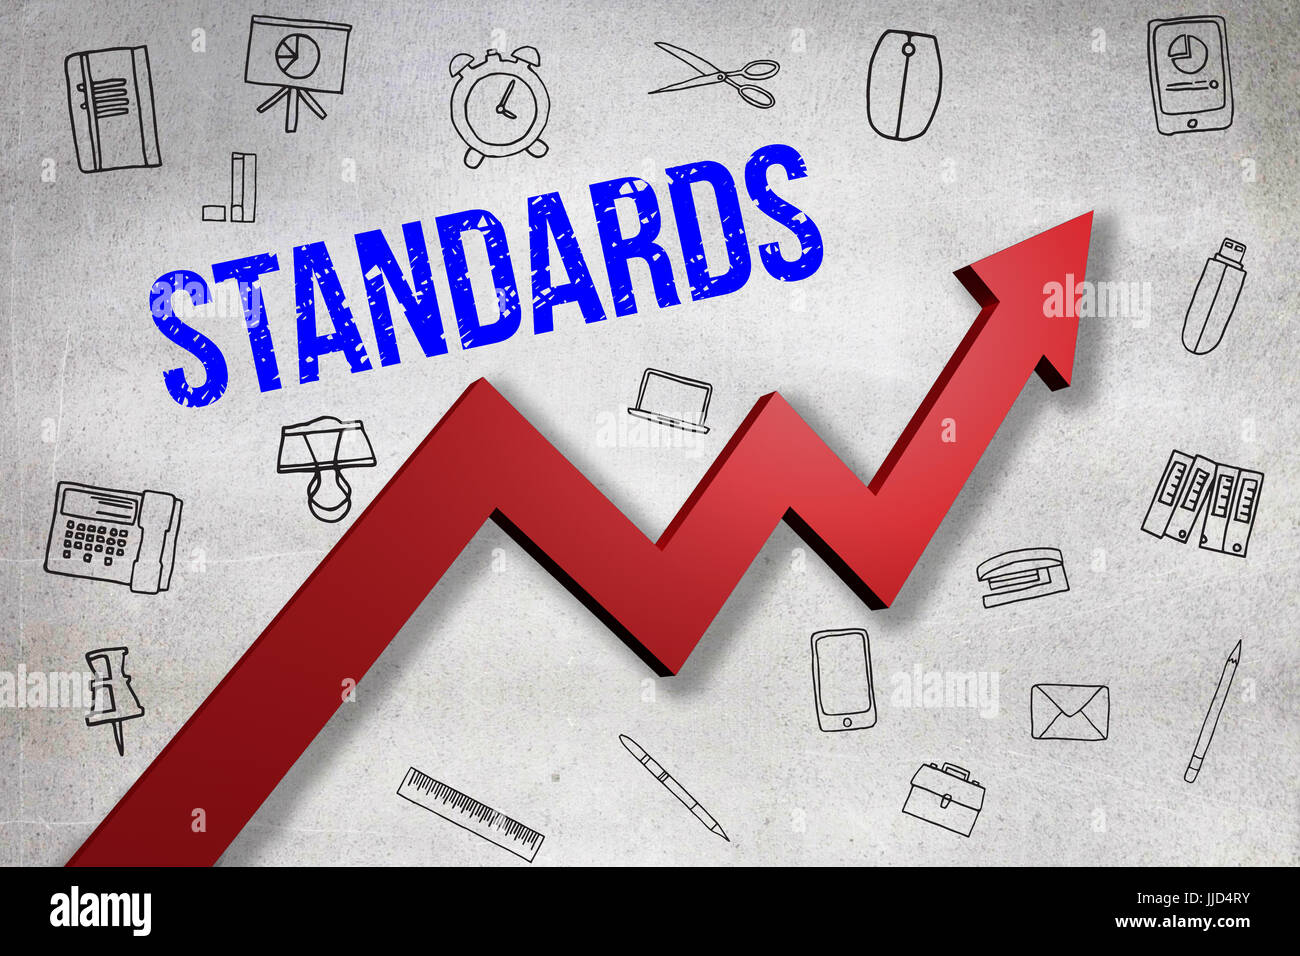 Digitally generated image of Standards text  against black wall - Stock Image